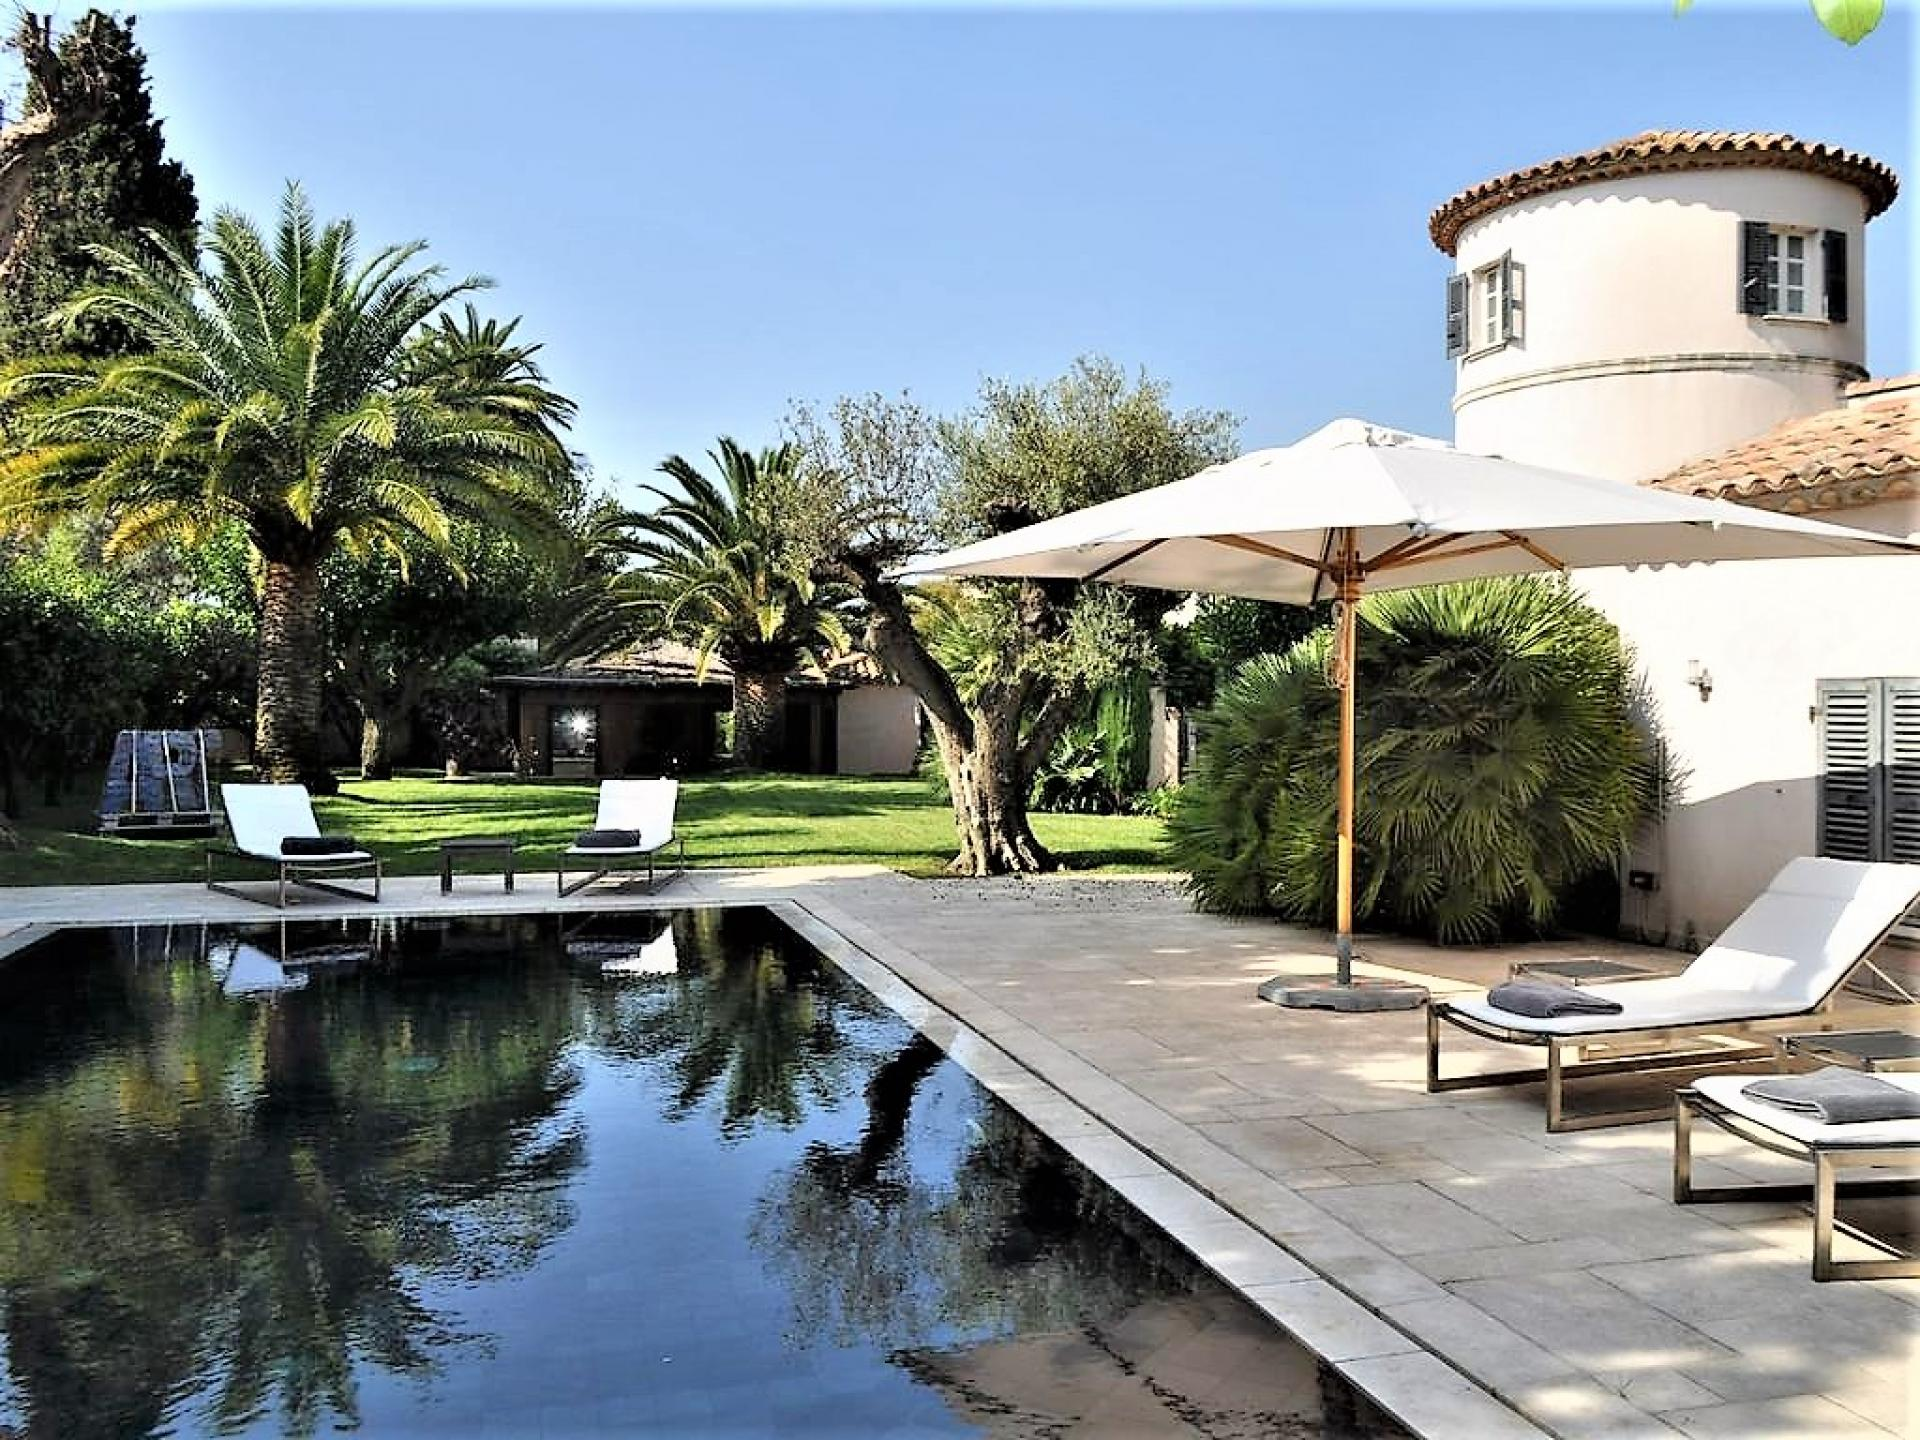 A LARGE SWIMMING POOL ANT ITS GARDEN IN A LUXURY VILLA TO RENT RIGHT IN THE CENTRE OF SAINT TROPEZ